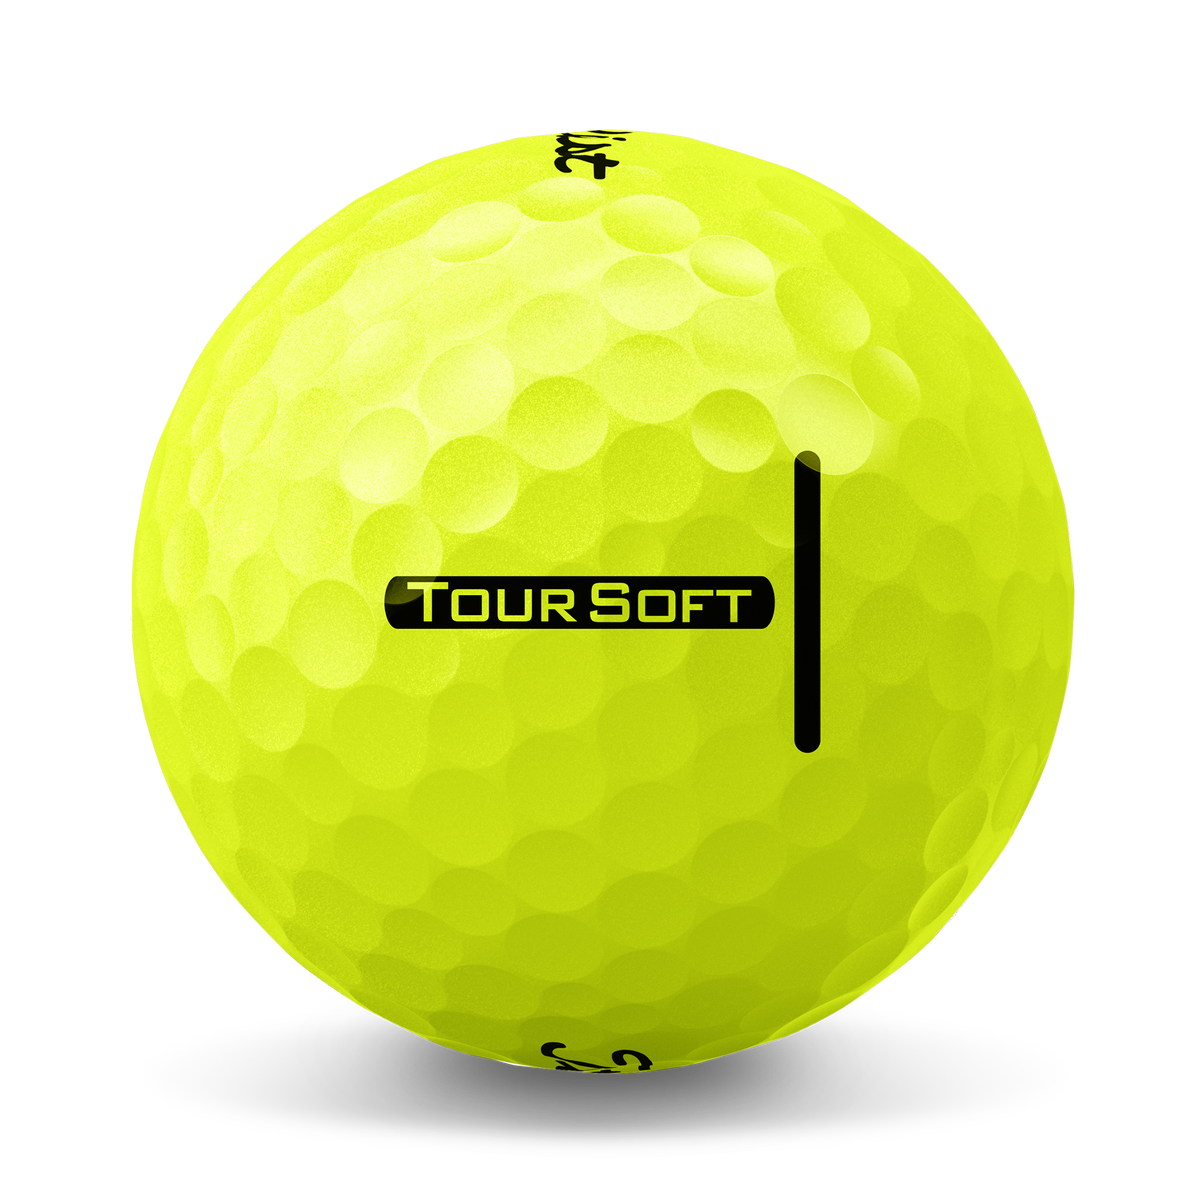 Tour Soft Yellow